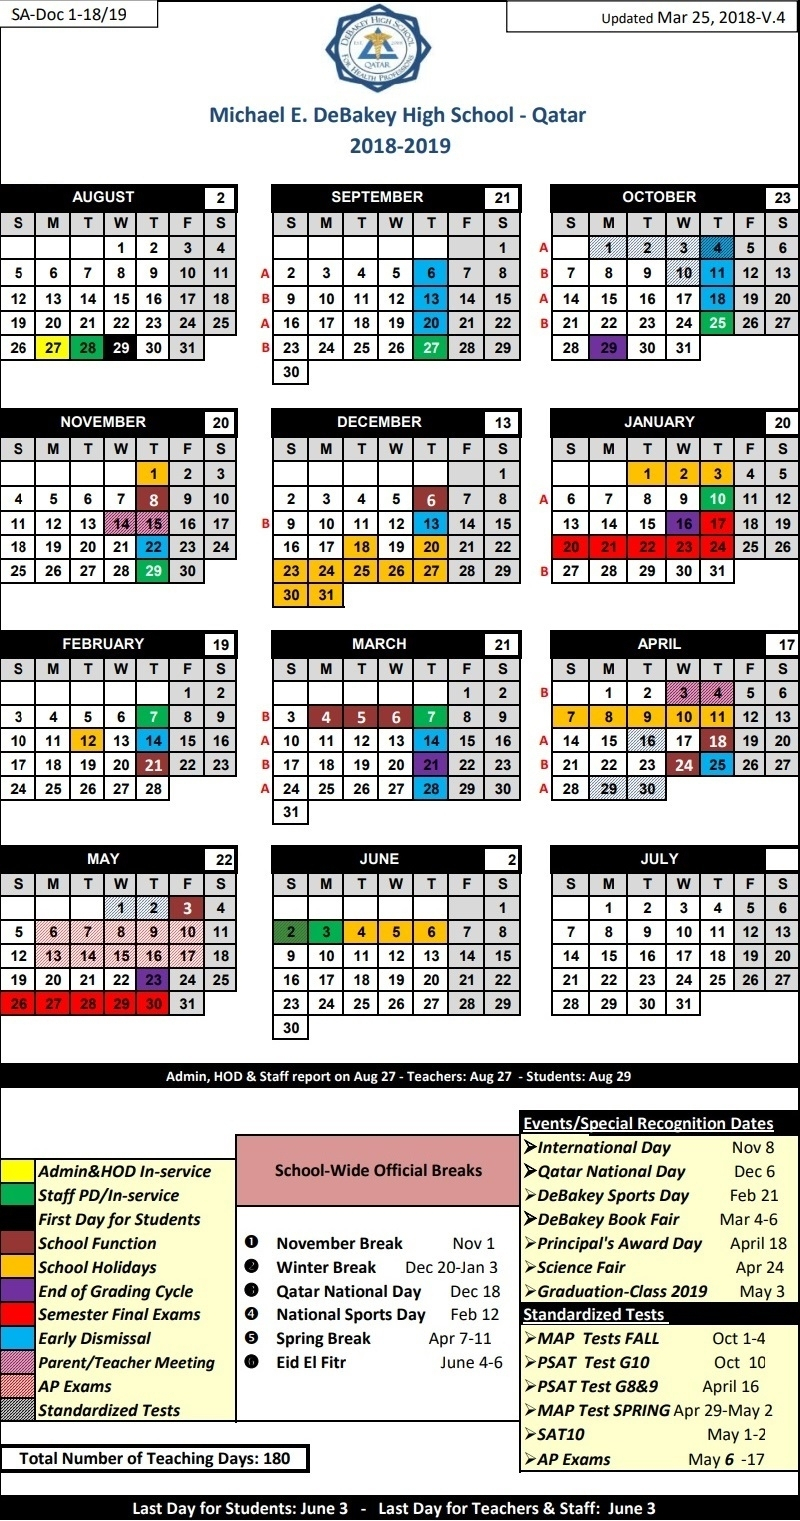 School Year Calendar 20192020 Michael E. Debakey High regarding Debakey High School Calendar